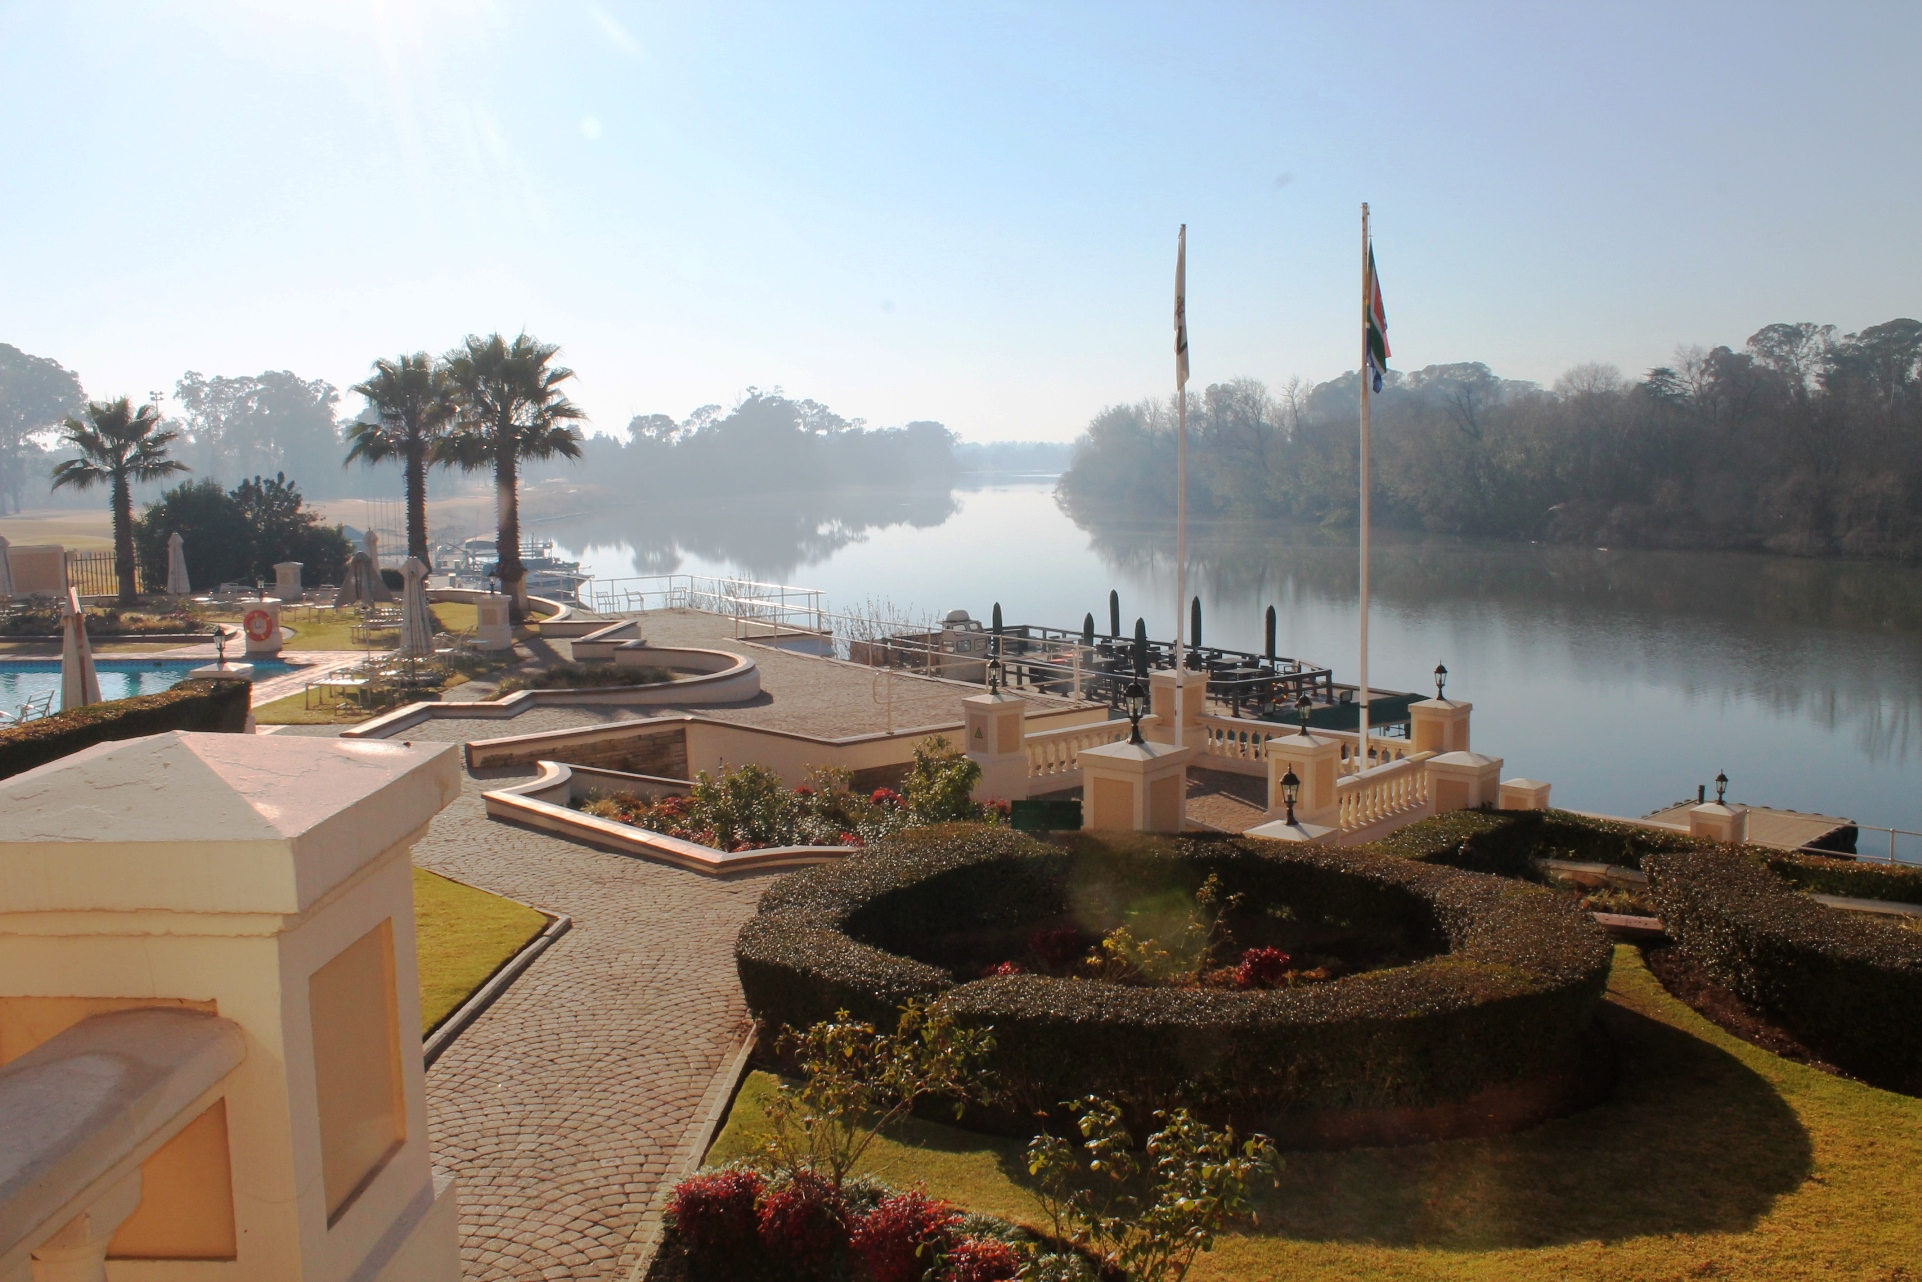 BON Hotel Riviera on Vaal in Vereeniging